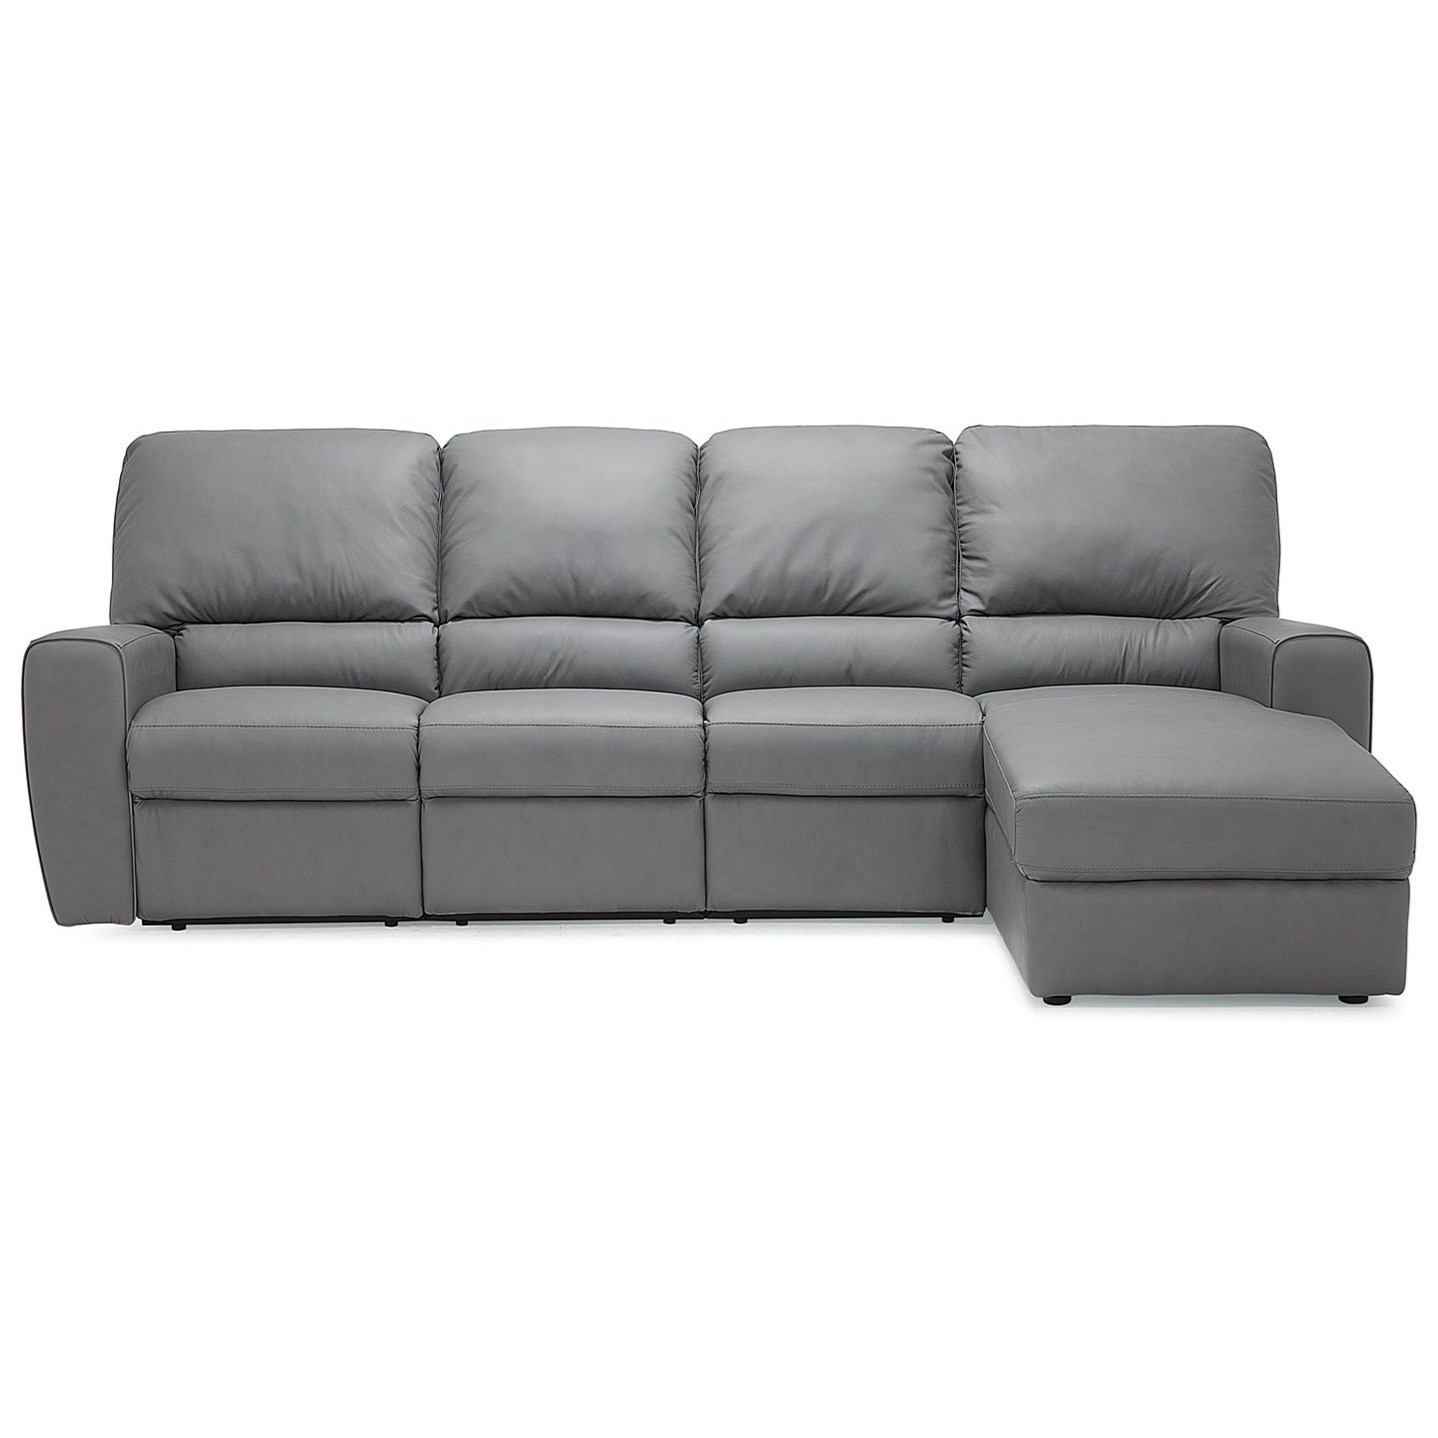 Palliser San Francisco 4 Seat Reclining Sectional Sofa With